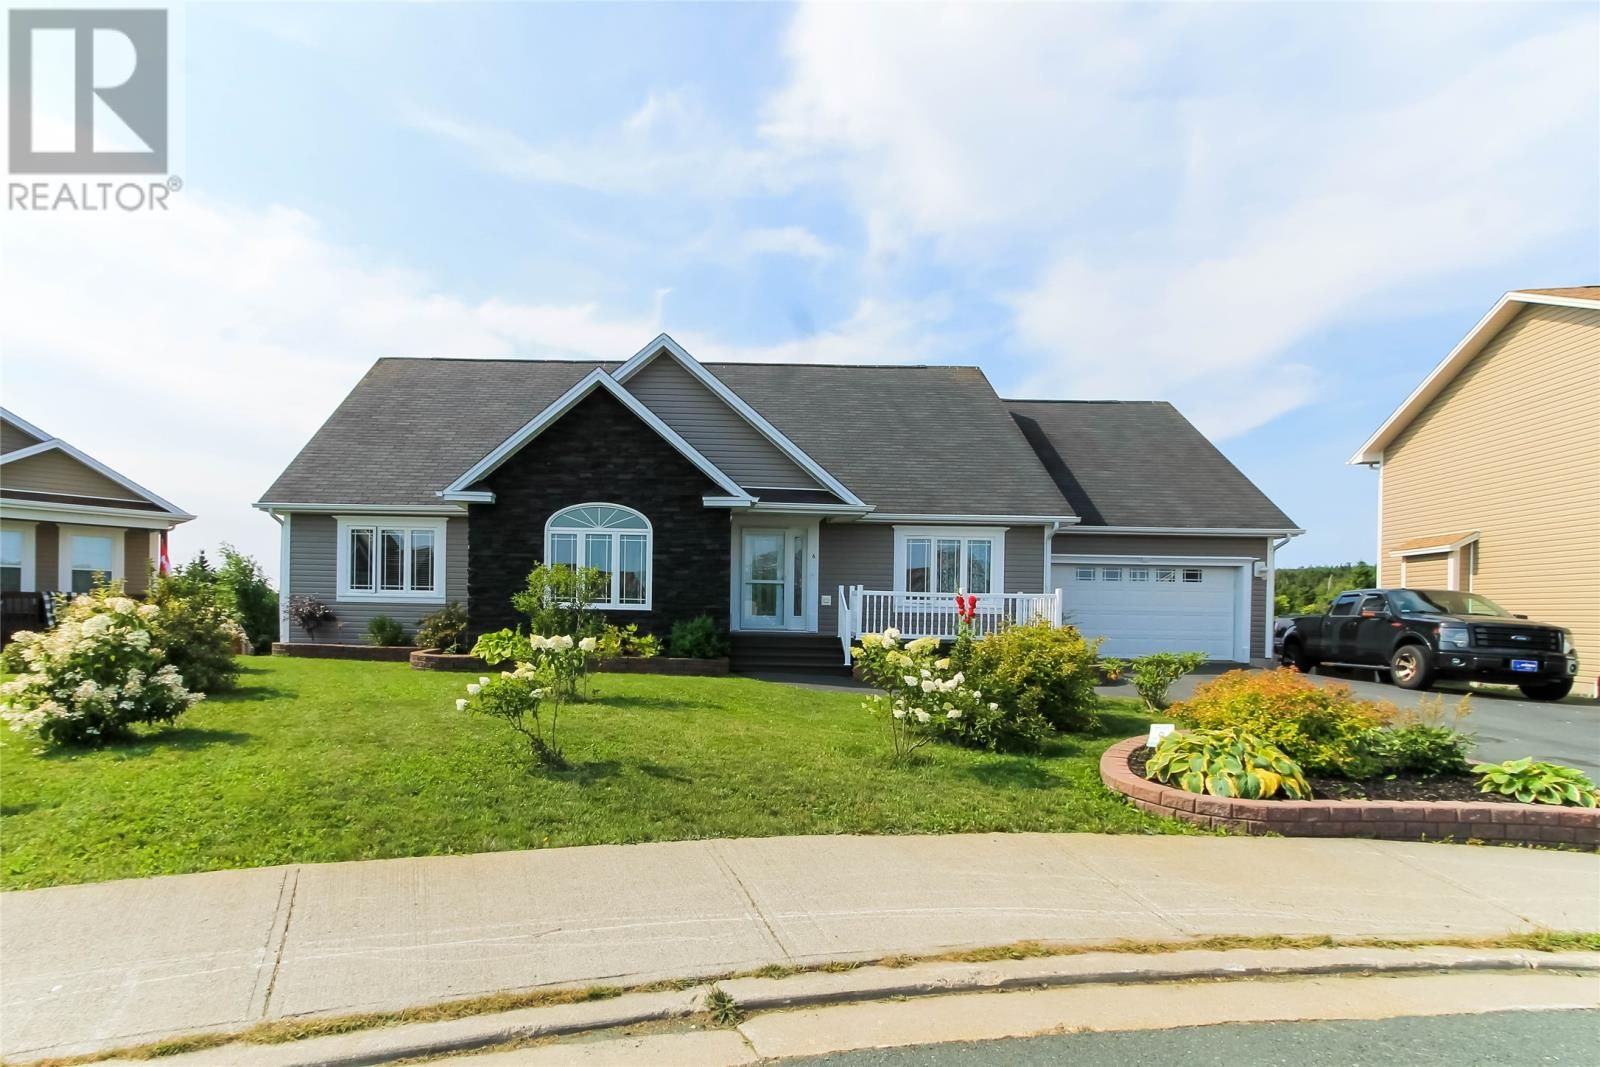 Main Photo: 6 Kate Marie Place in Paradise: House for sale : MLS®# 1236032